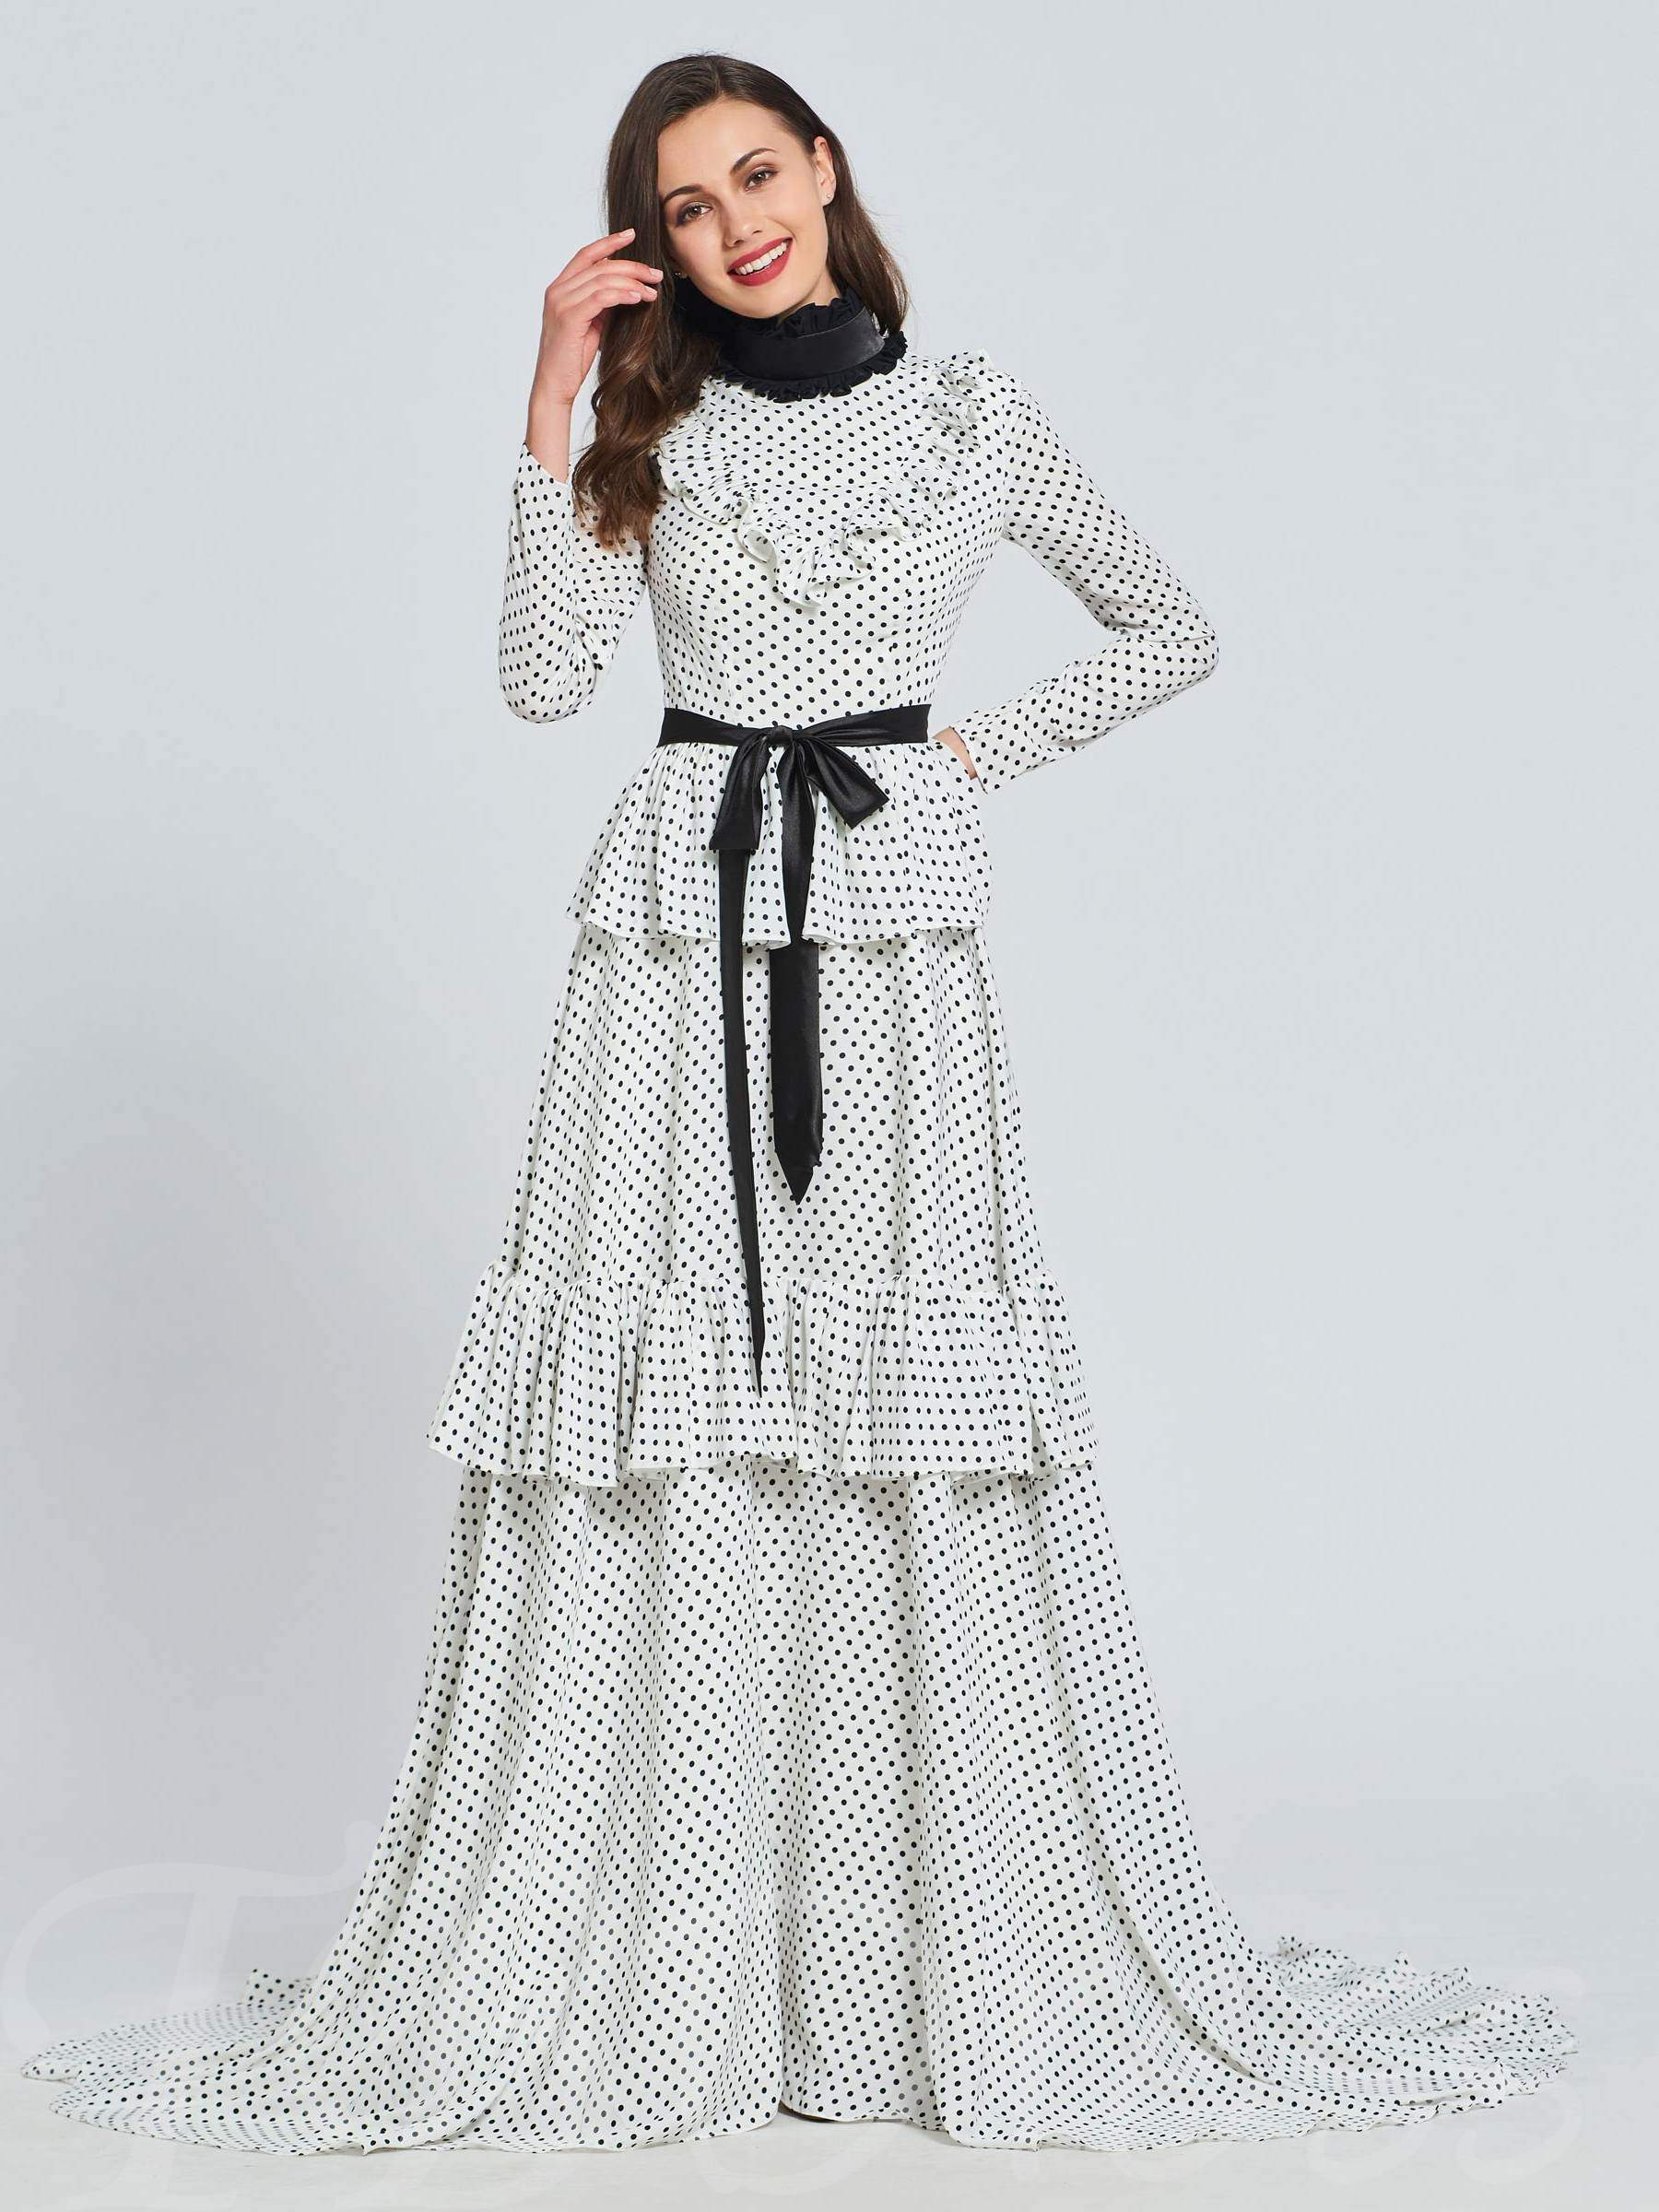 Buy A-Line High Neck Multi Color Evening Dress, Spring,Summer,Fall,Winter, 13393525 for $176.99 in TBDress store